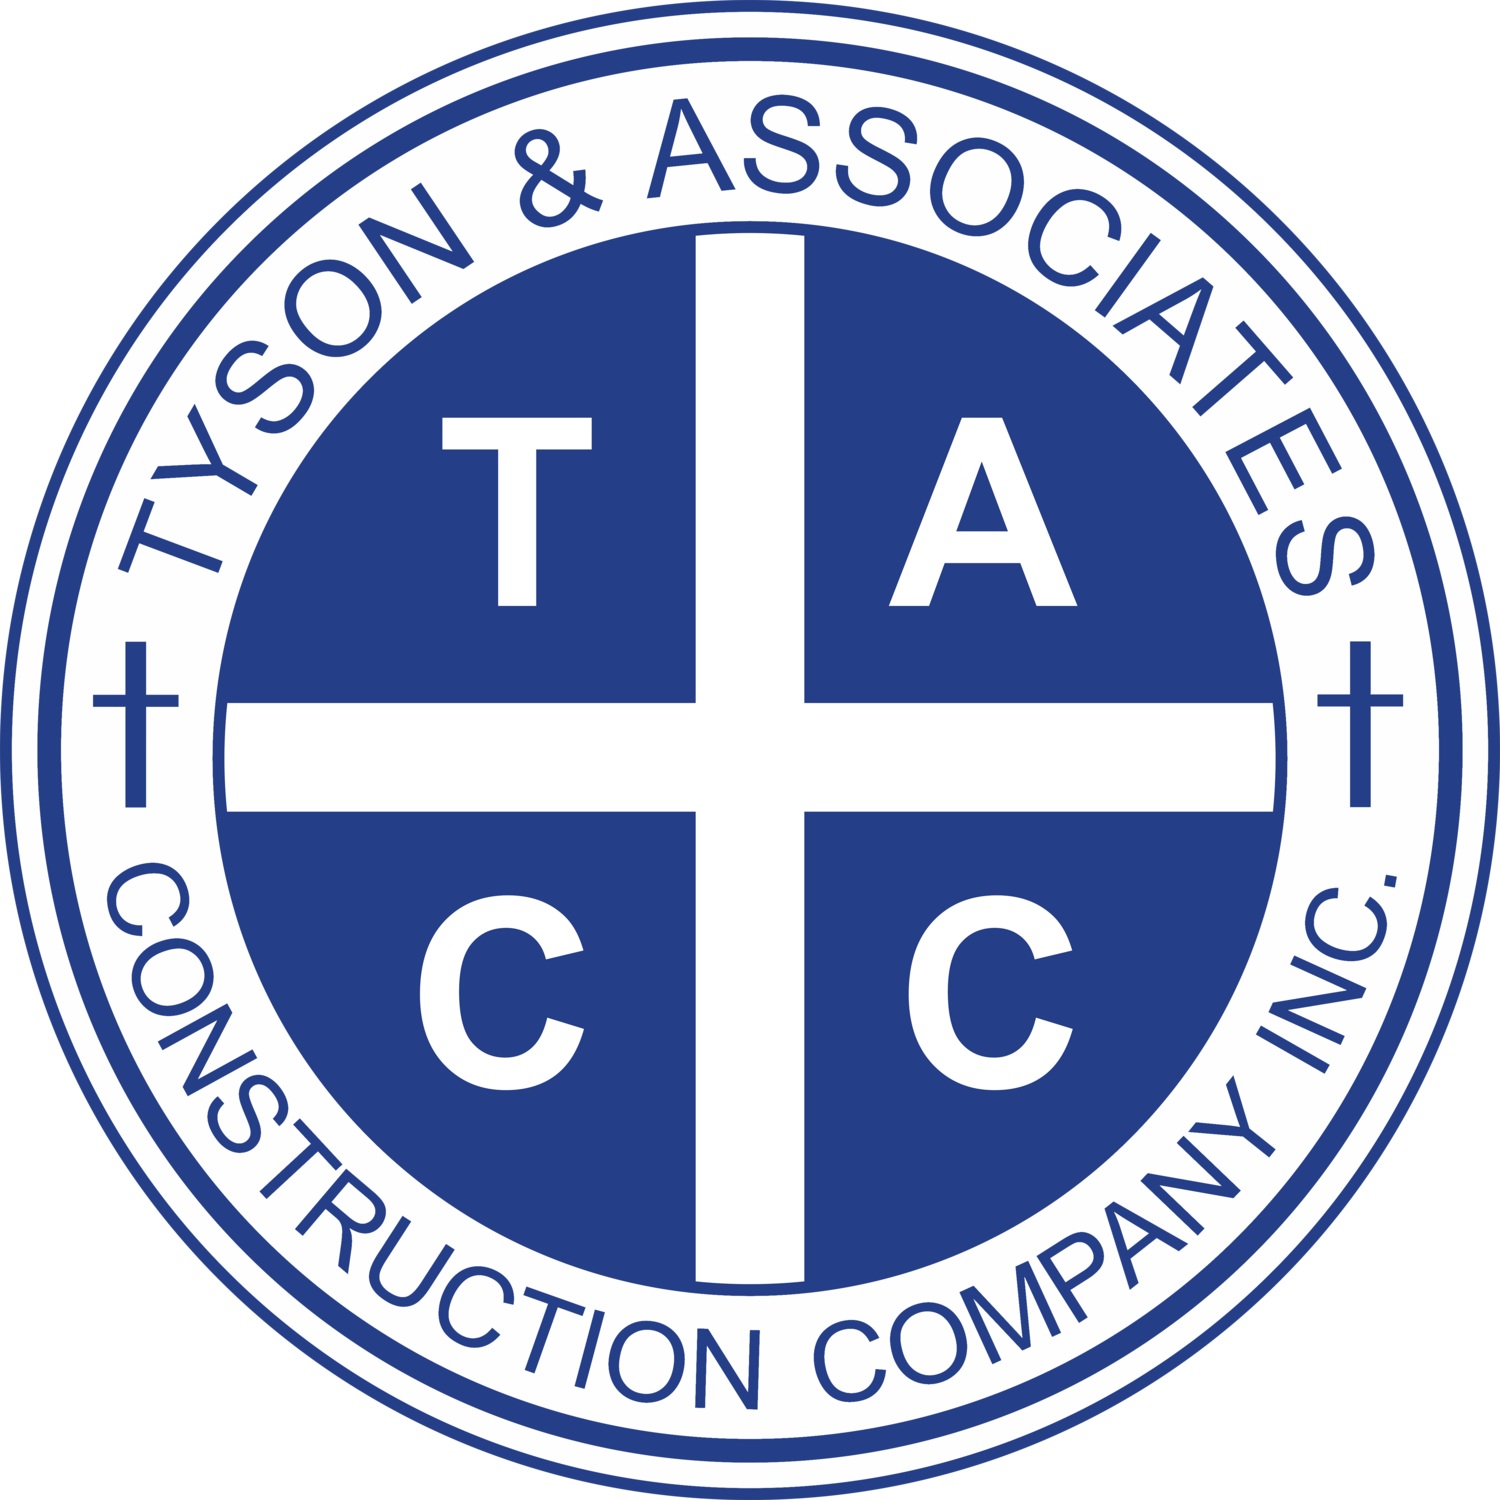 Tyson & Associates Construction Company